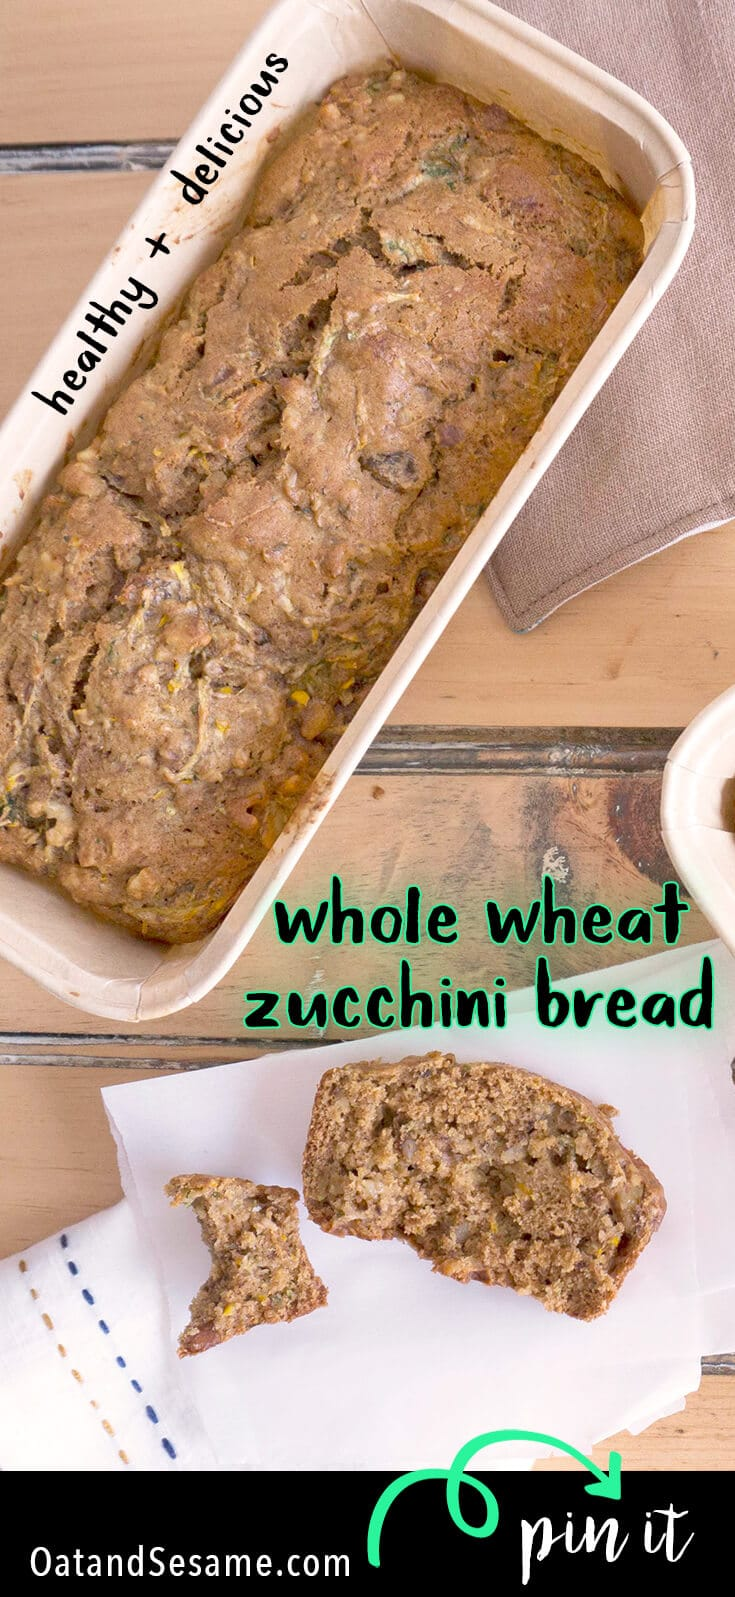 When Zucchini Season is at its high, you'll need to start making zucchini bread! This Whole Wheat Zucchini Walnut Bread is delicious and healthy. It also works great as the base for Zucchini Bread French toast! | #BREAD | #ZUCCHINI | #WHOLEGRAIN | #Recipes at OatandSesame.com